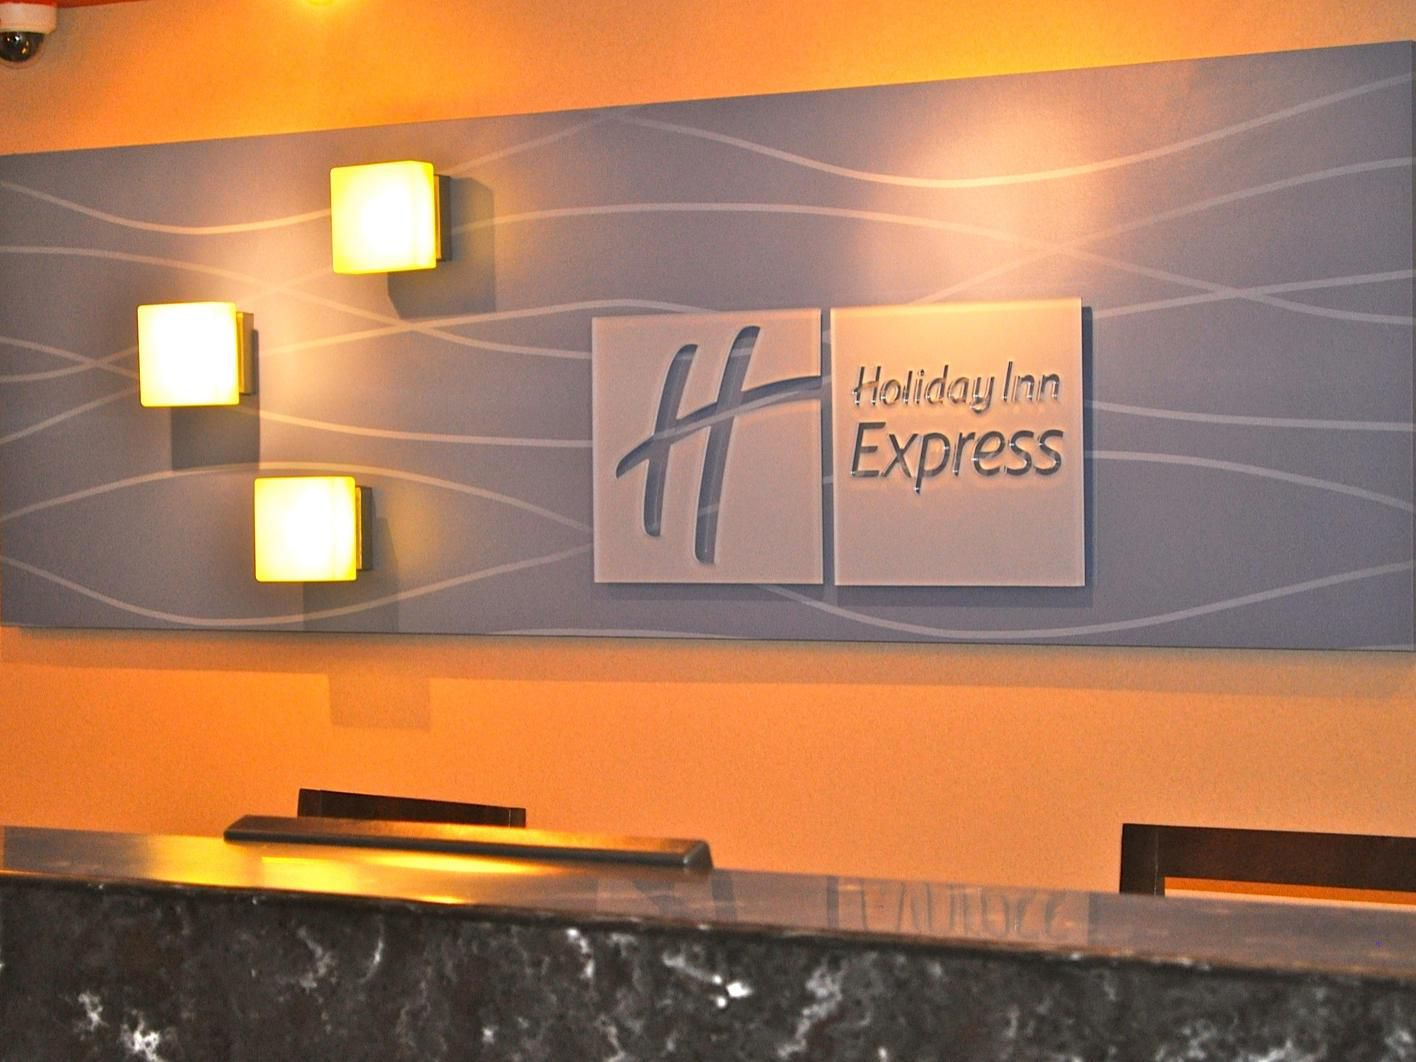 Holiday Inn Express Waterfront Mall Guest Services